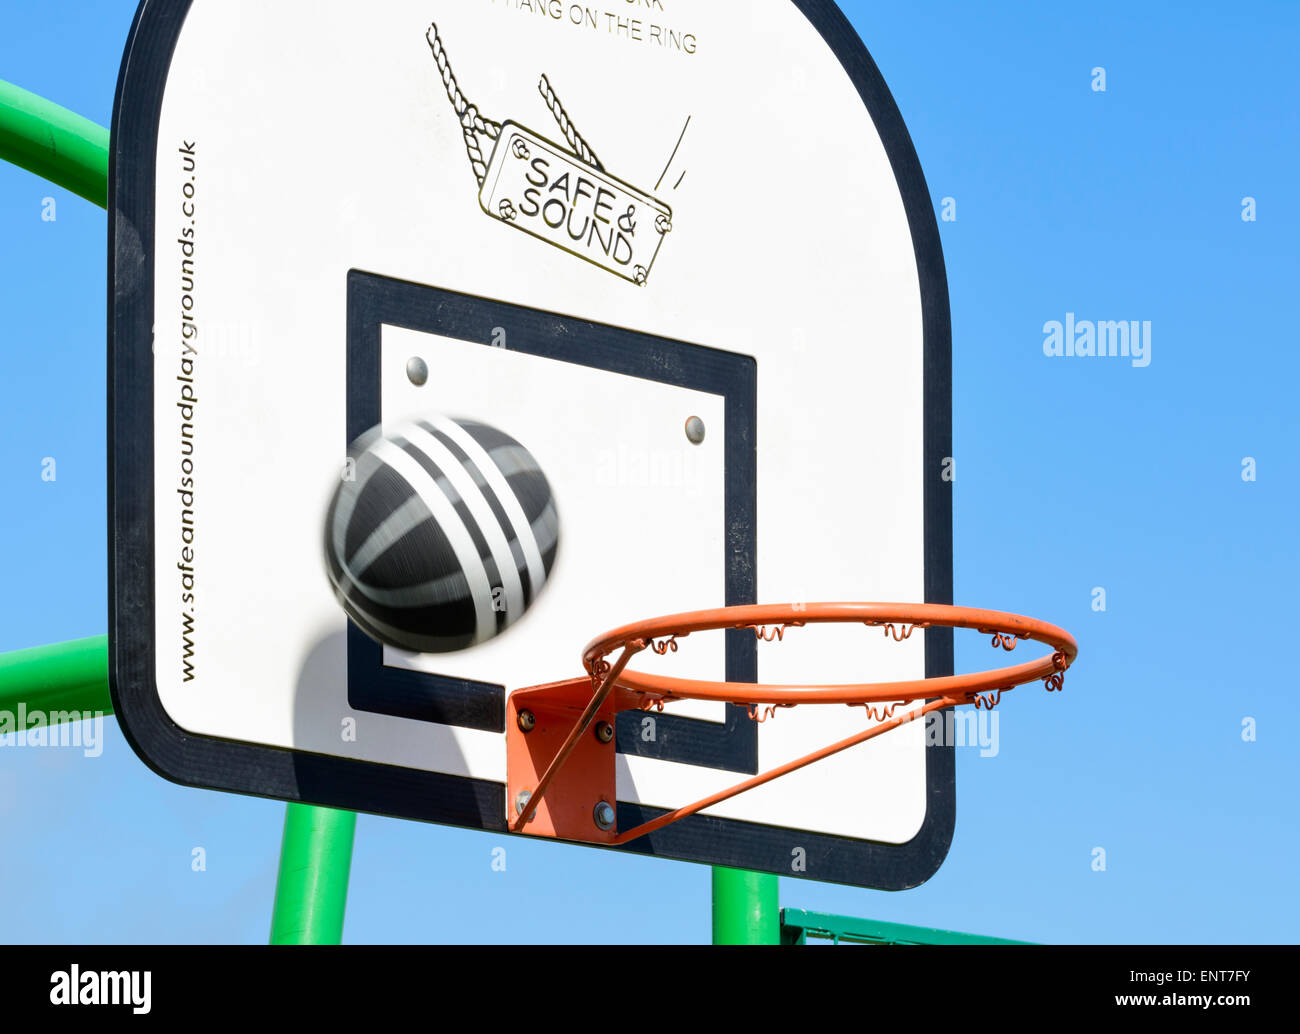 Basketball through at a hoop and missing. - Stock Image